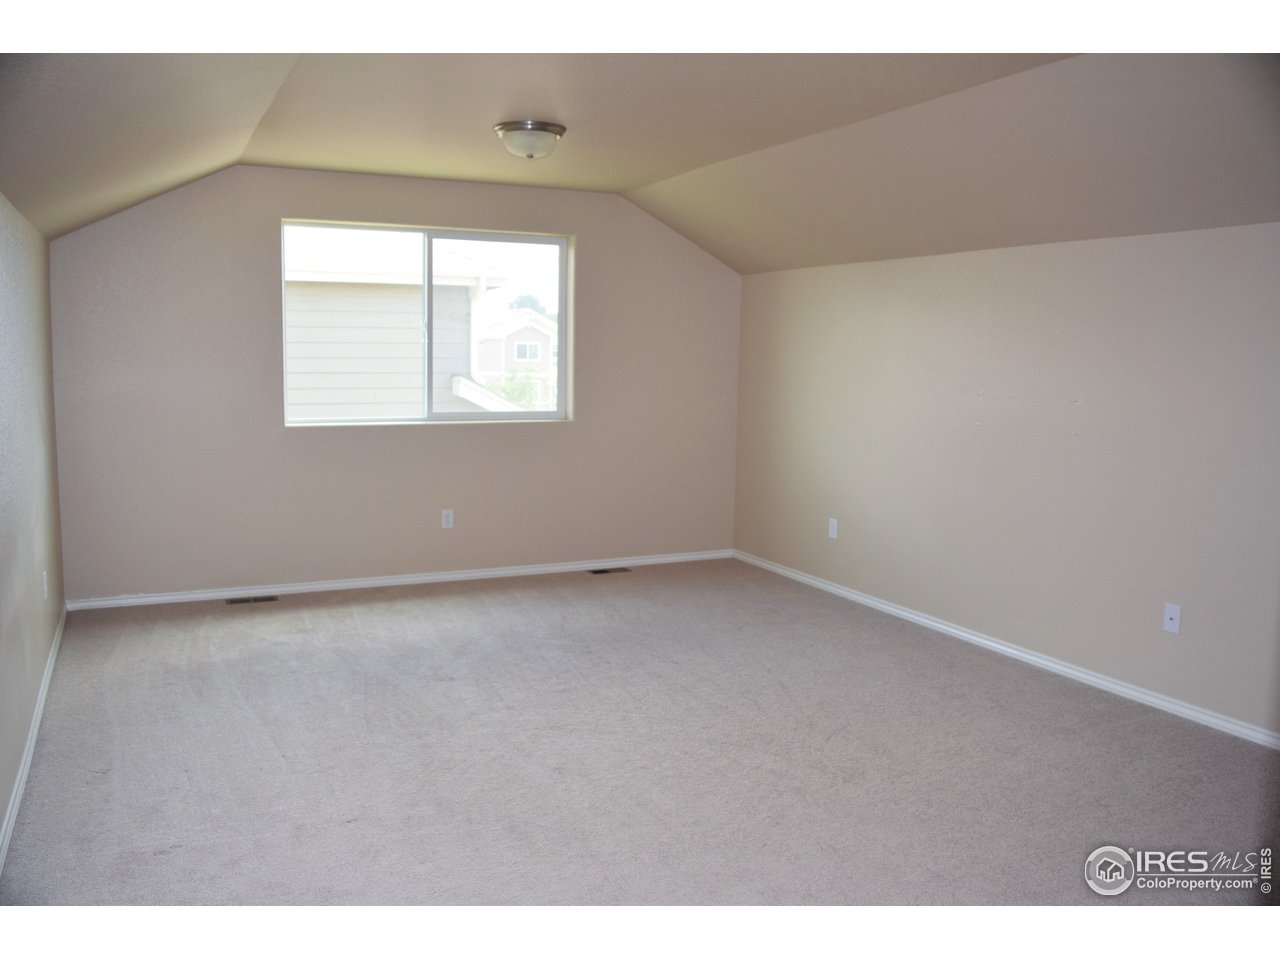 Large 3rd bedroom - easy to see without stuff ;)